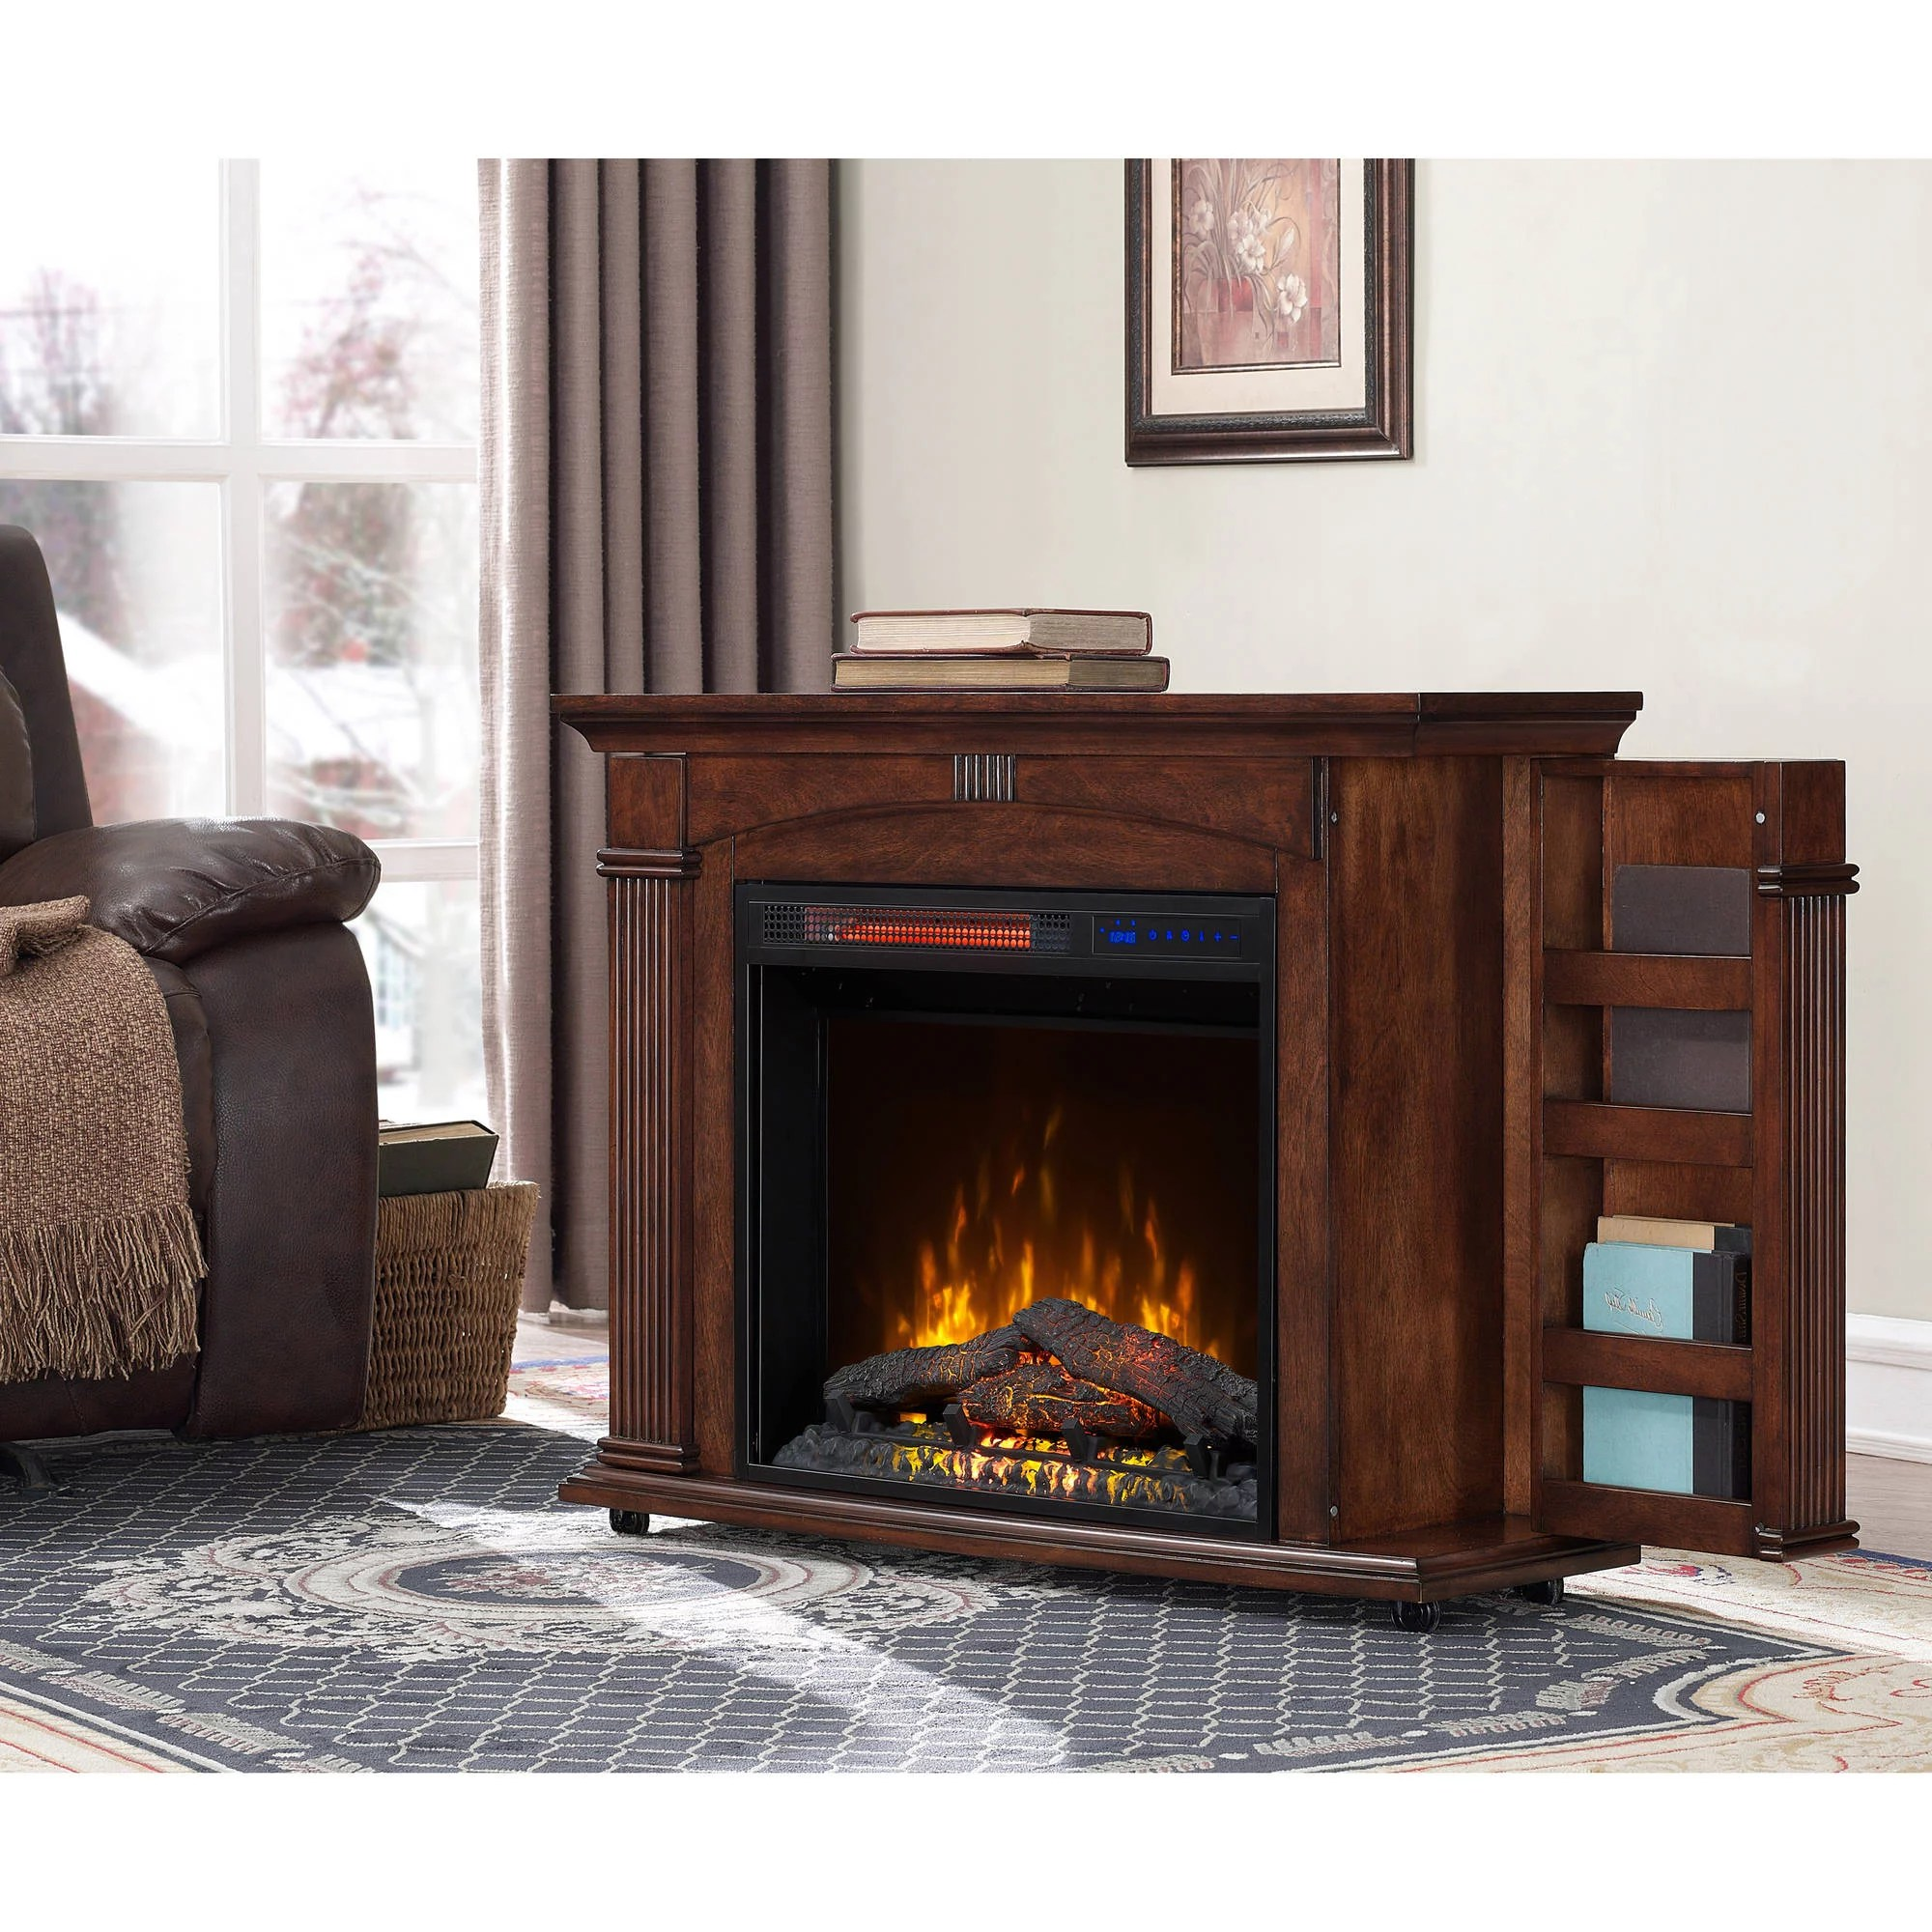 Cherry Fireplace Mantels Prokonian 37 Inch Mantel Electric Fireplace In Cherry